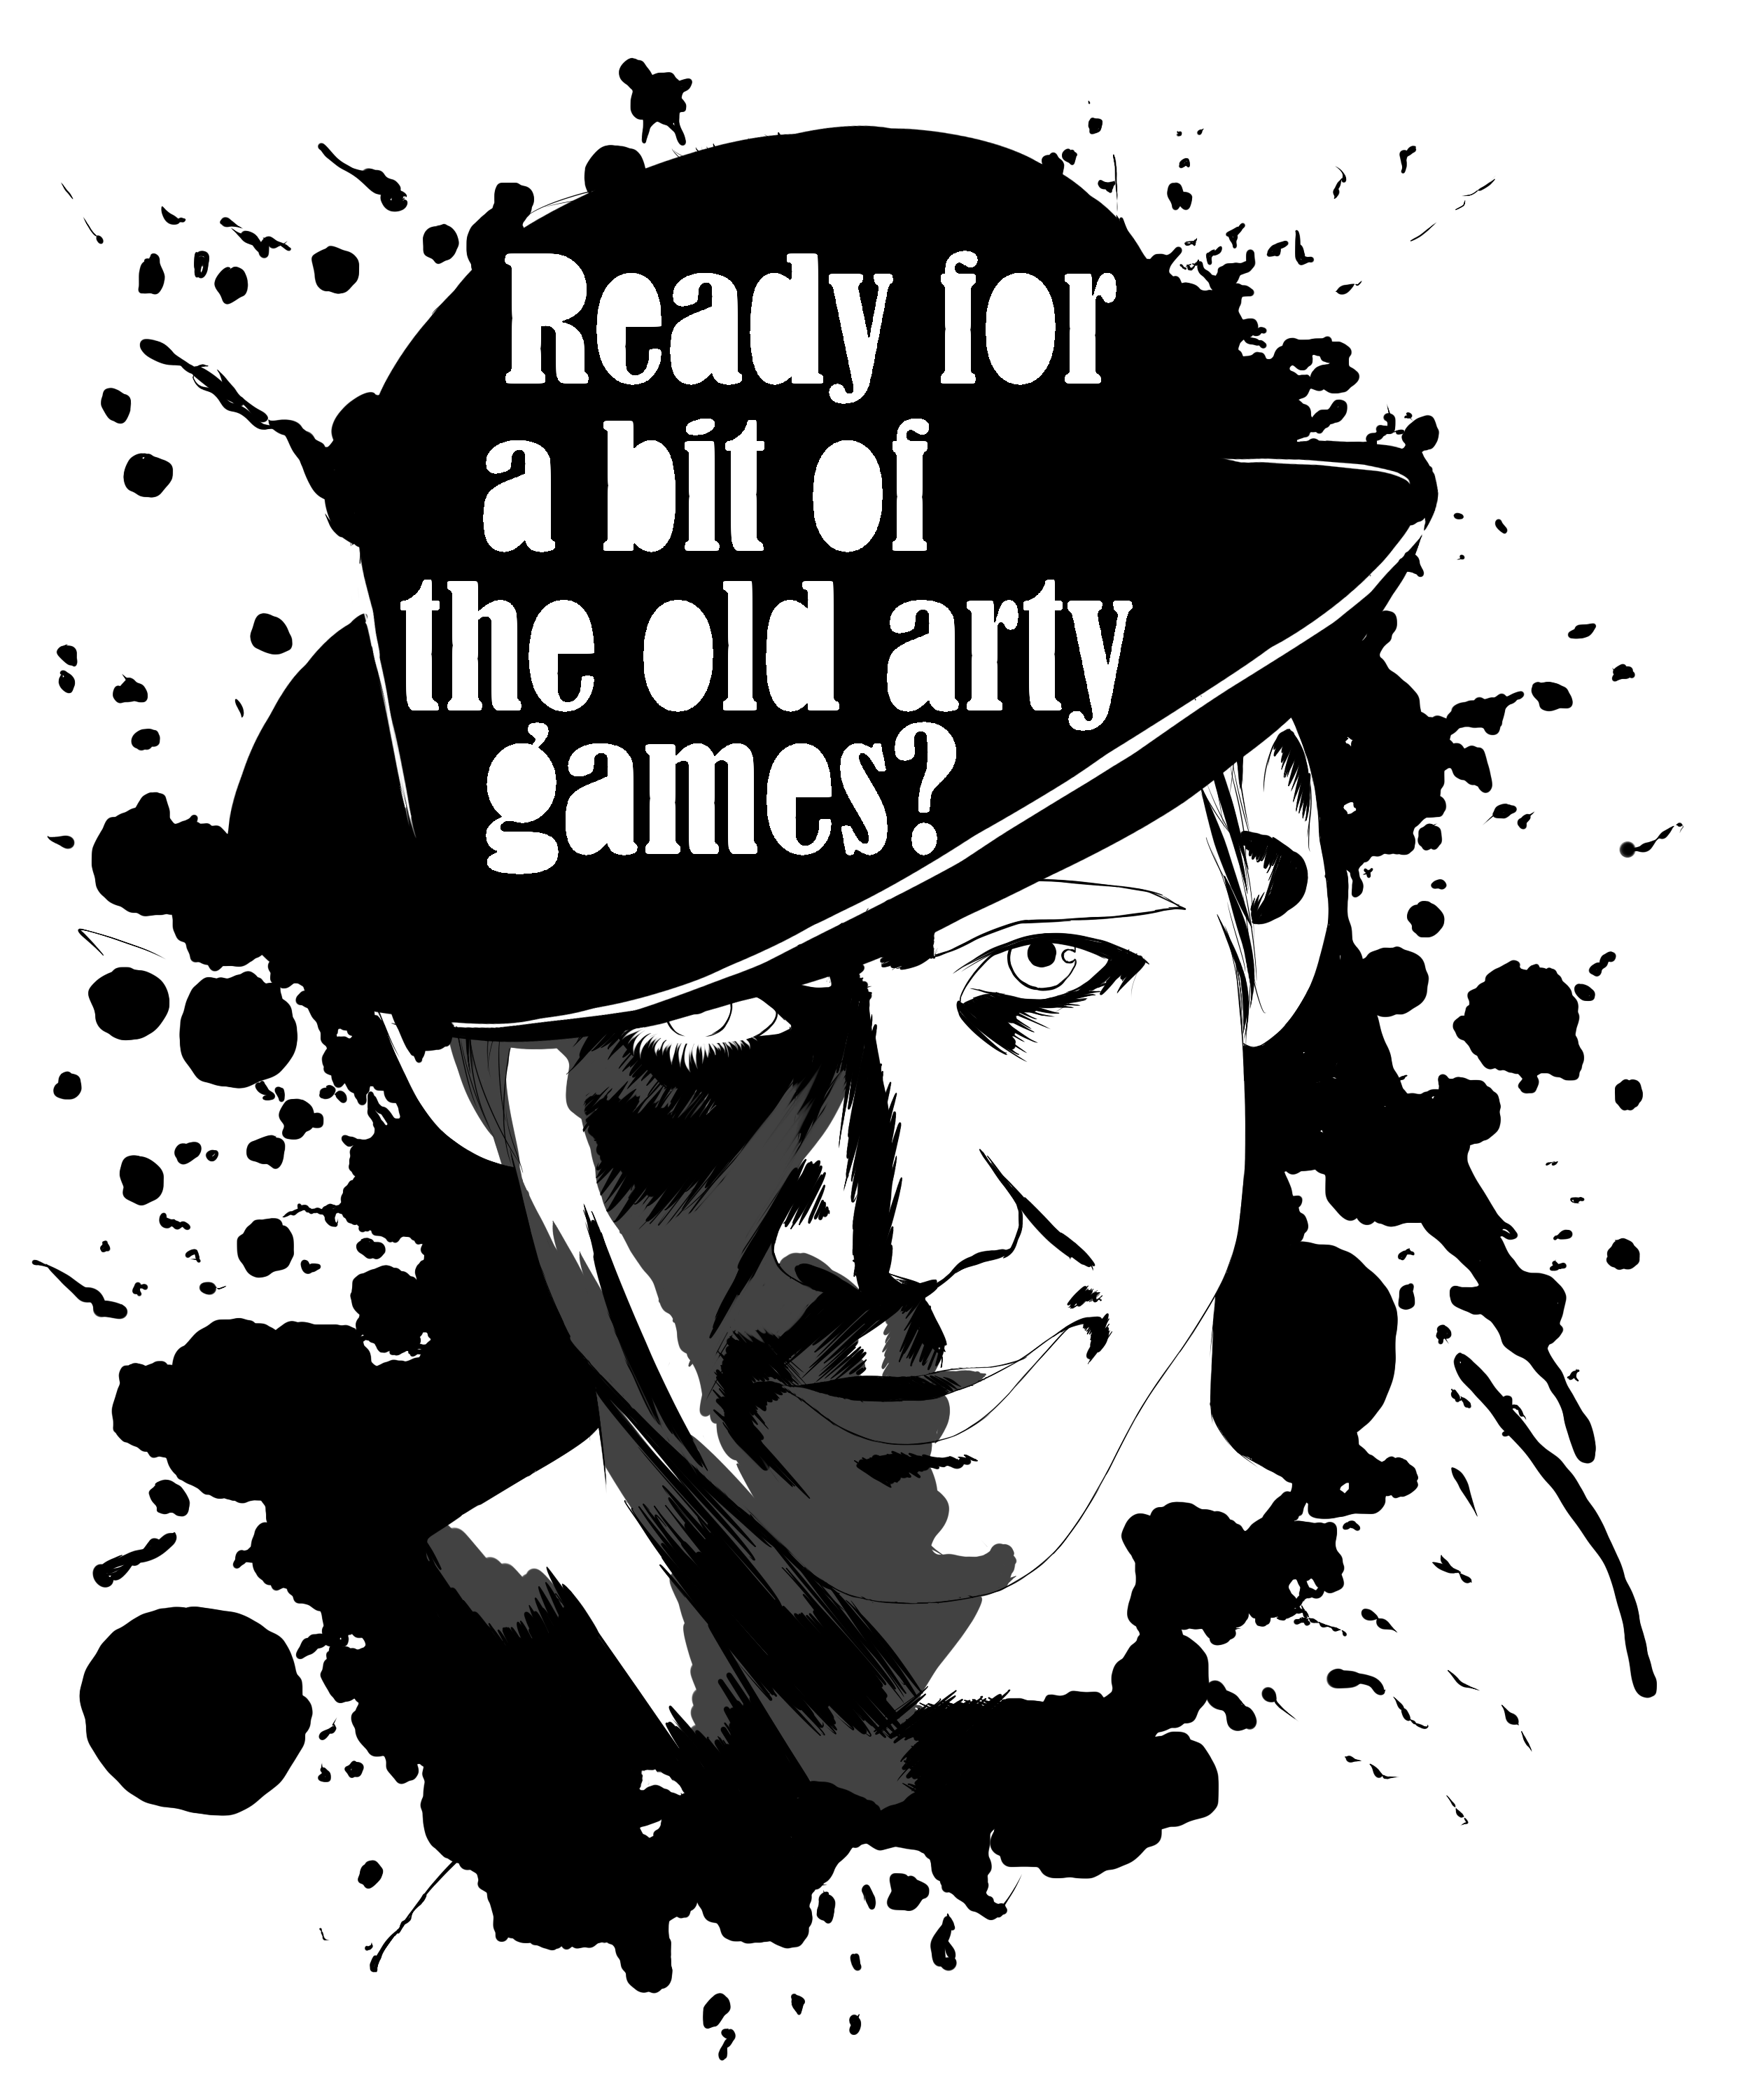 Ready for a bit of the old arty games?